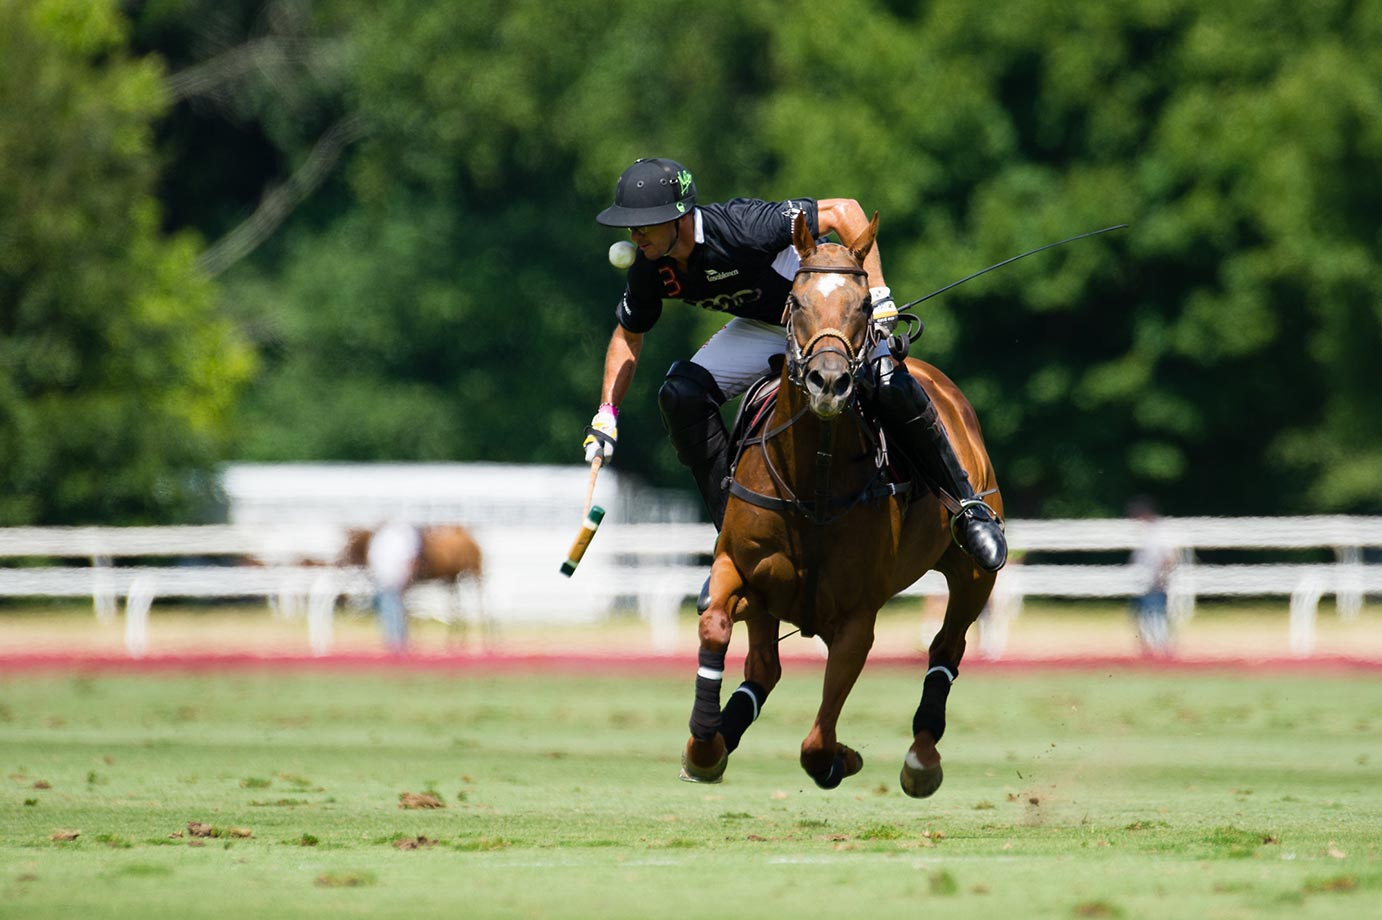 Nic Roldan, an American 8 goaler playing for the Audi Polo Team, gets a ball to the face in a match against Turkish Airlines in the USPA and Greenwich Polo Club's 2015 East Coast Open Tournament.  Audi won on penalty shots, 14-9.